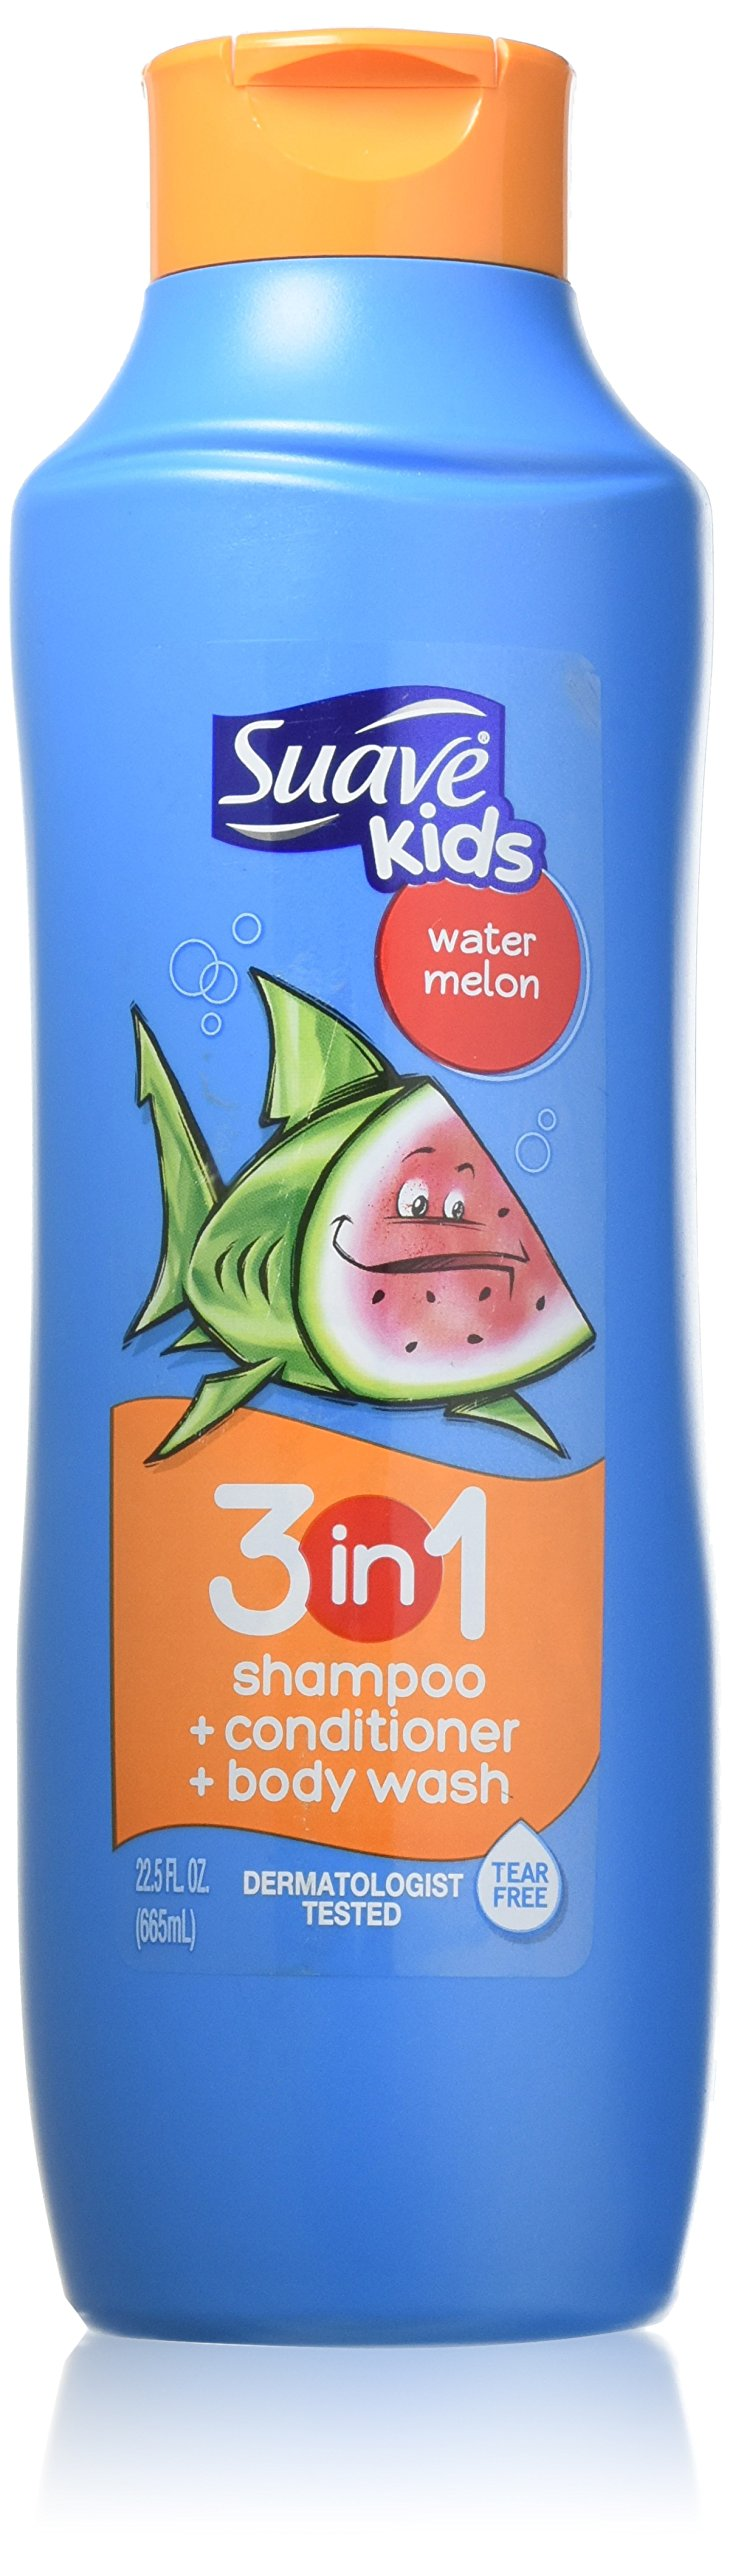 Suave Kids 3 in 1 Shampoo, Wacky Melon, 22.5 Oz (Pack of 3) by Suave